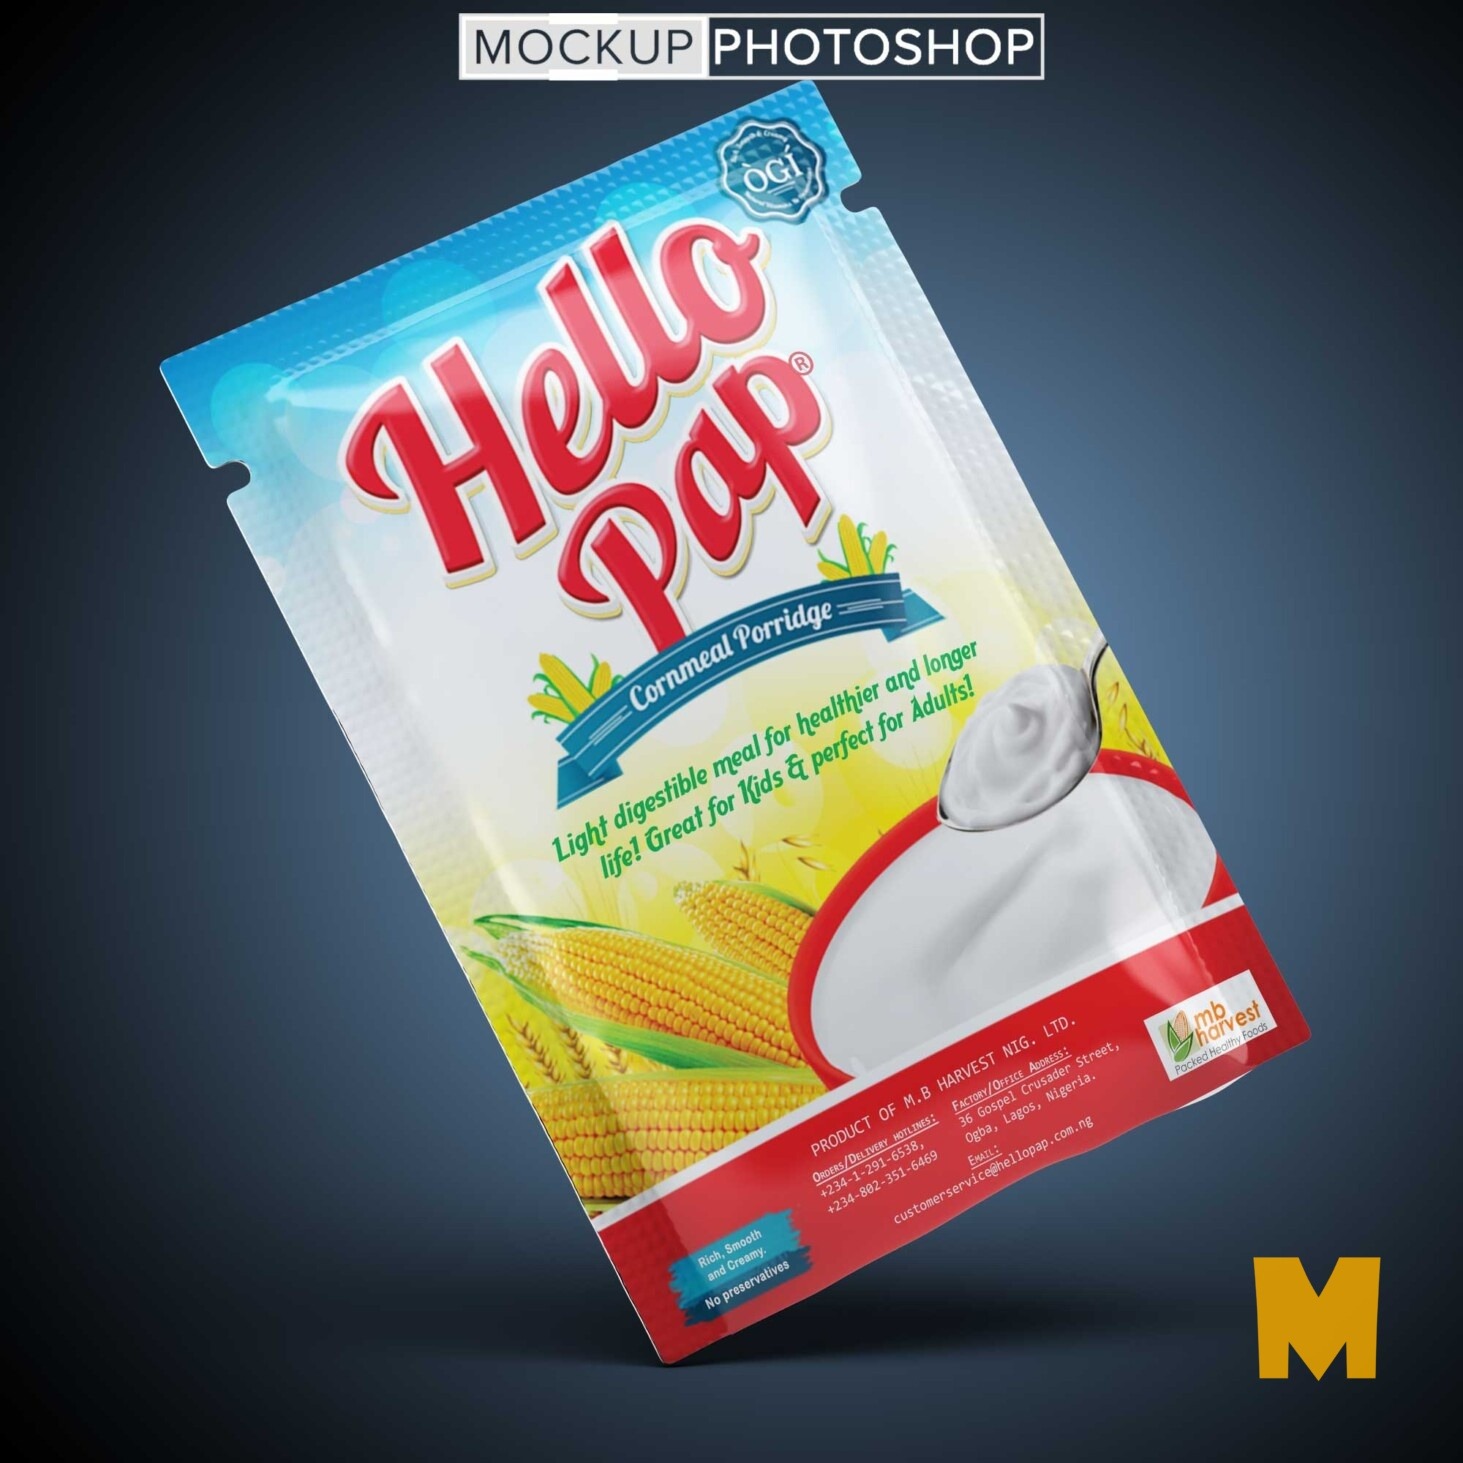 Packaging psd Mockup